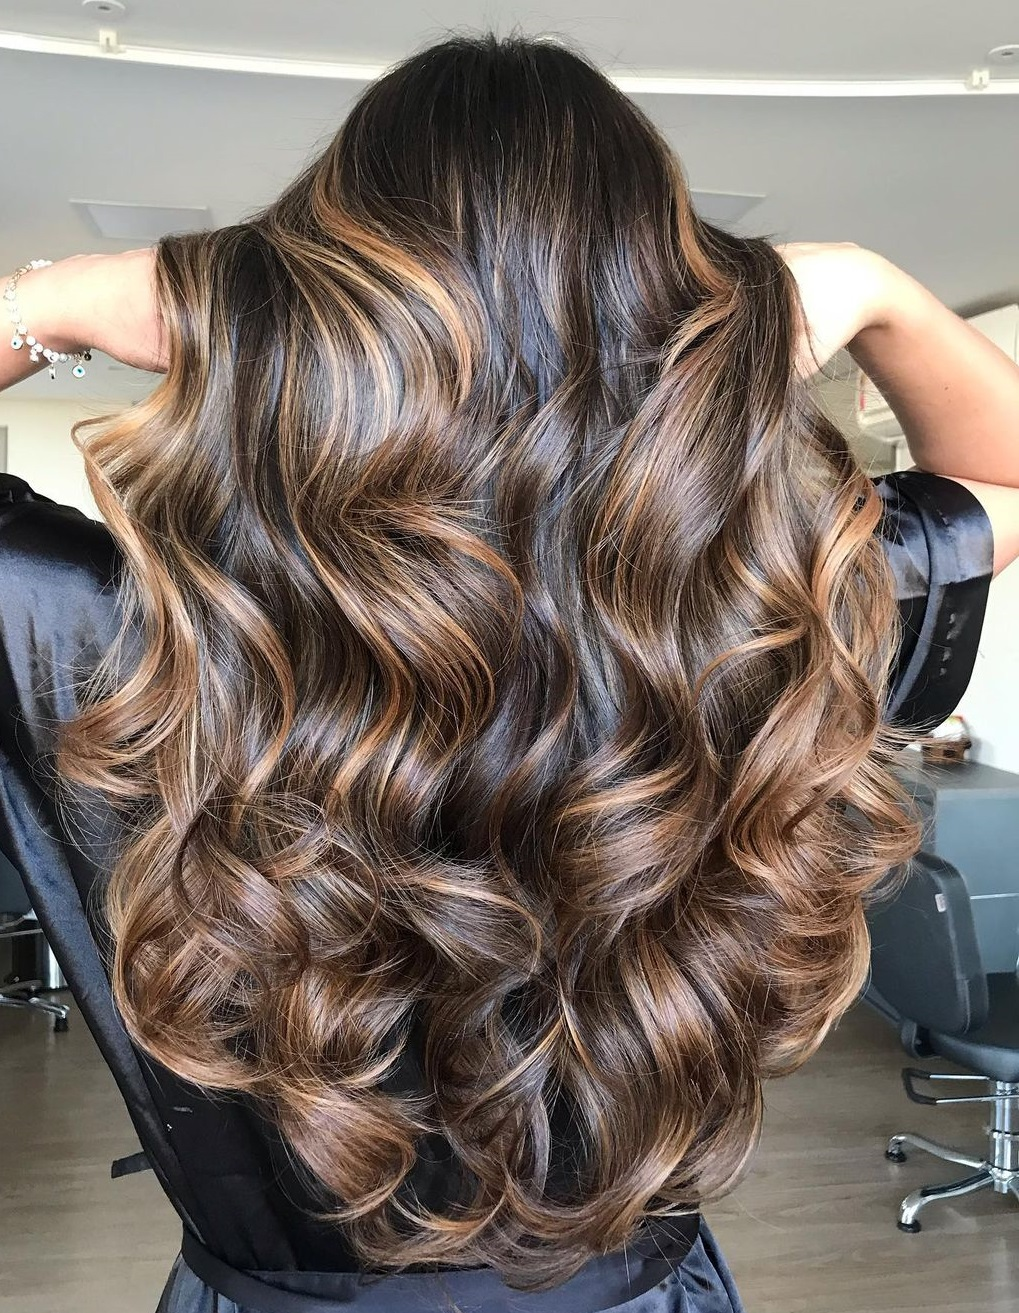 Highlights for Dark Curled Hair